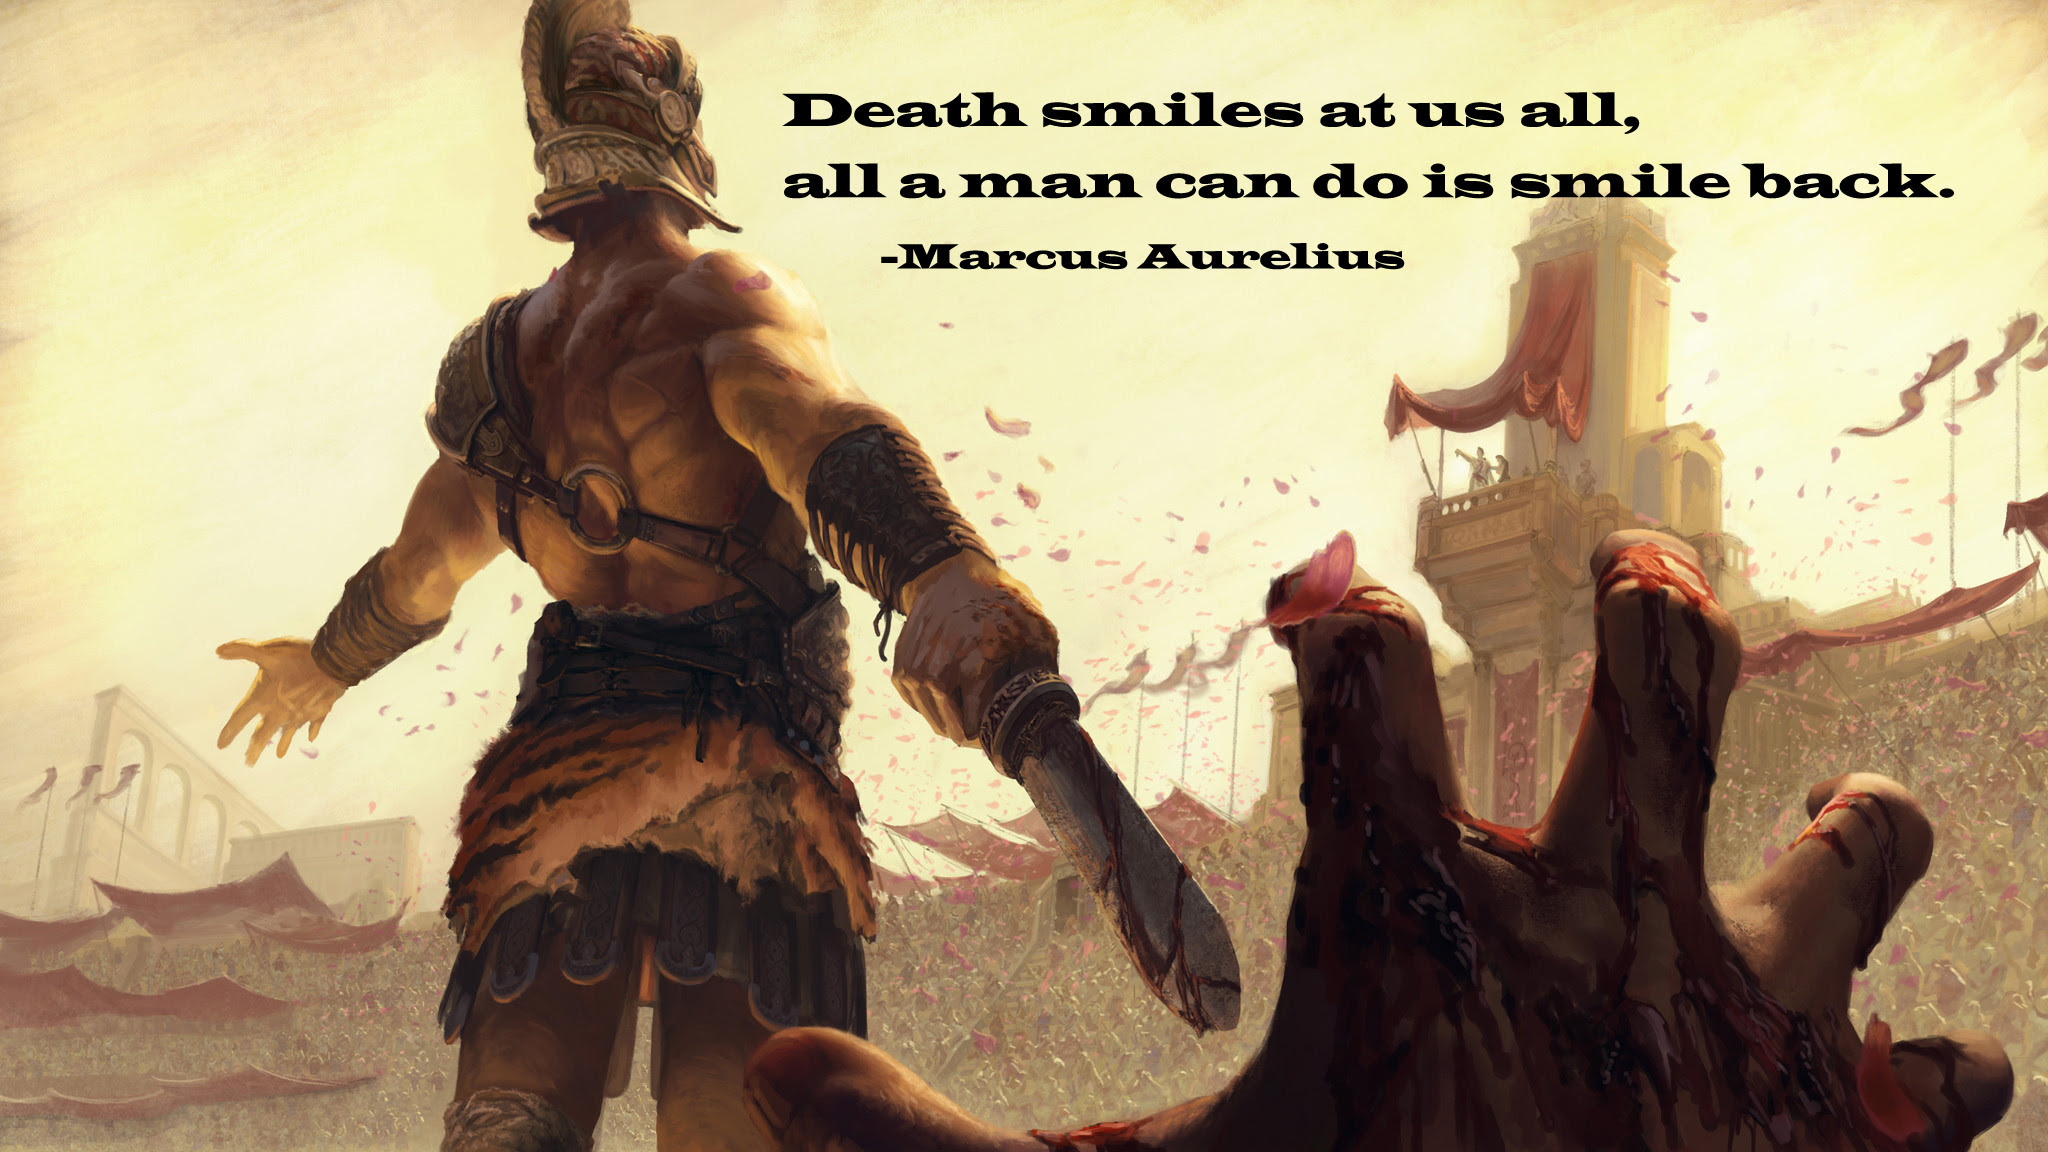 Death Smiles At Us All Marcus Aurelius 2048 1152 Quotesporn